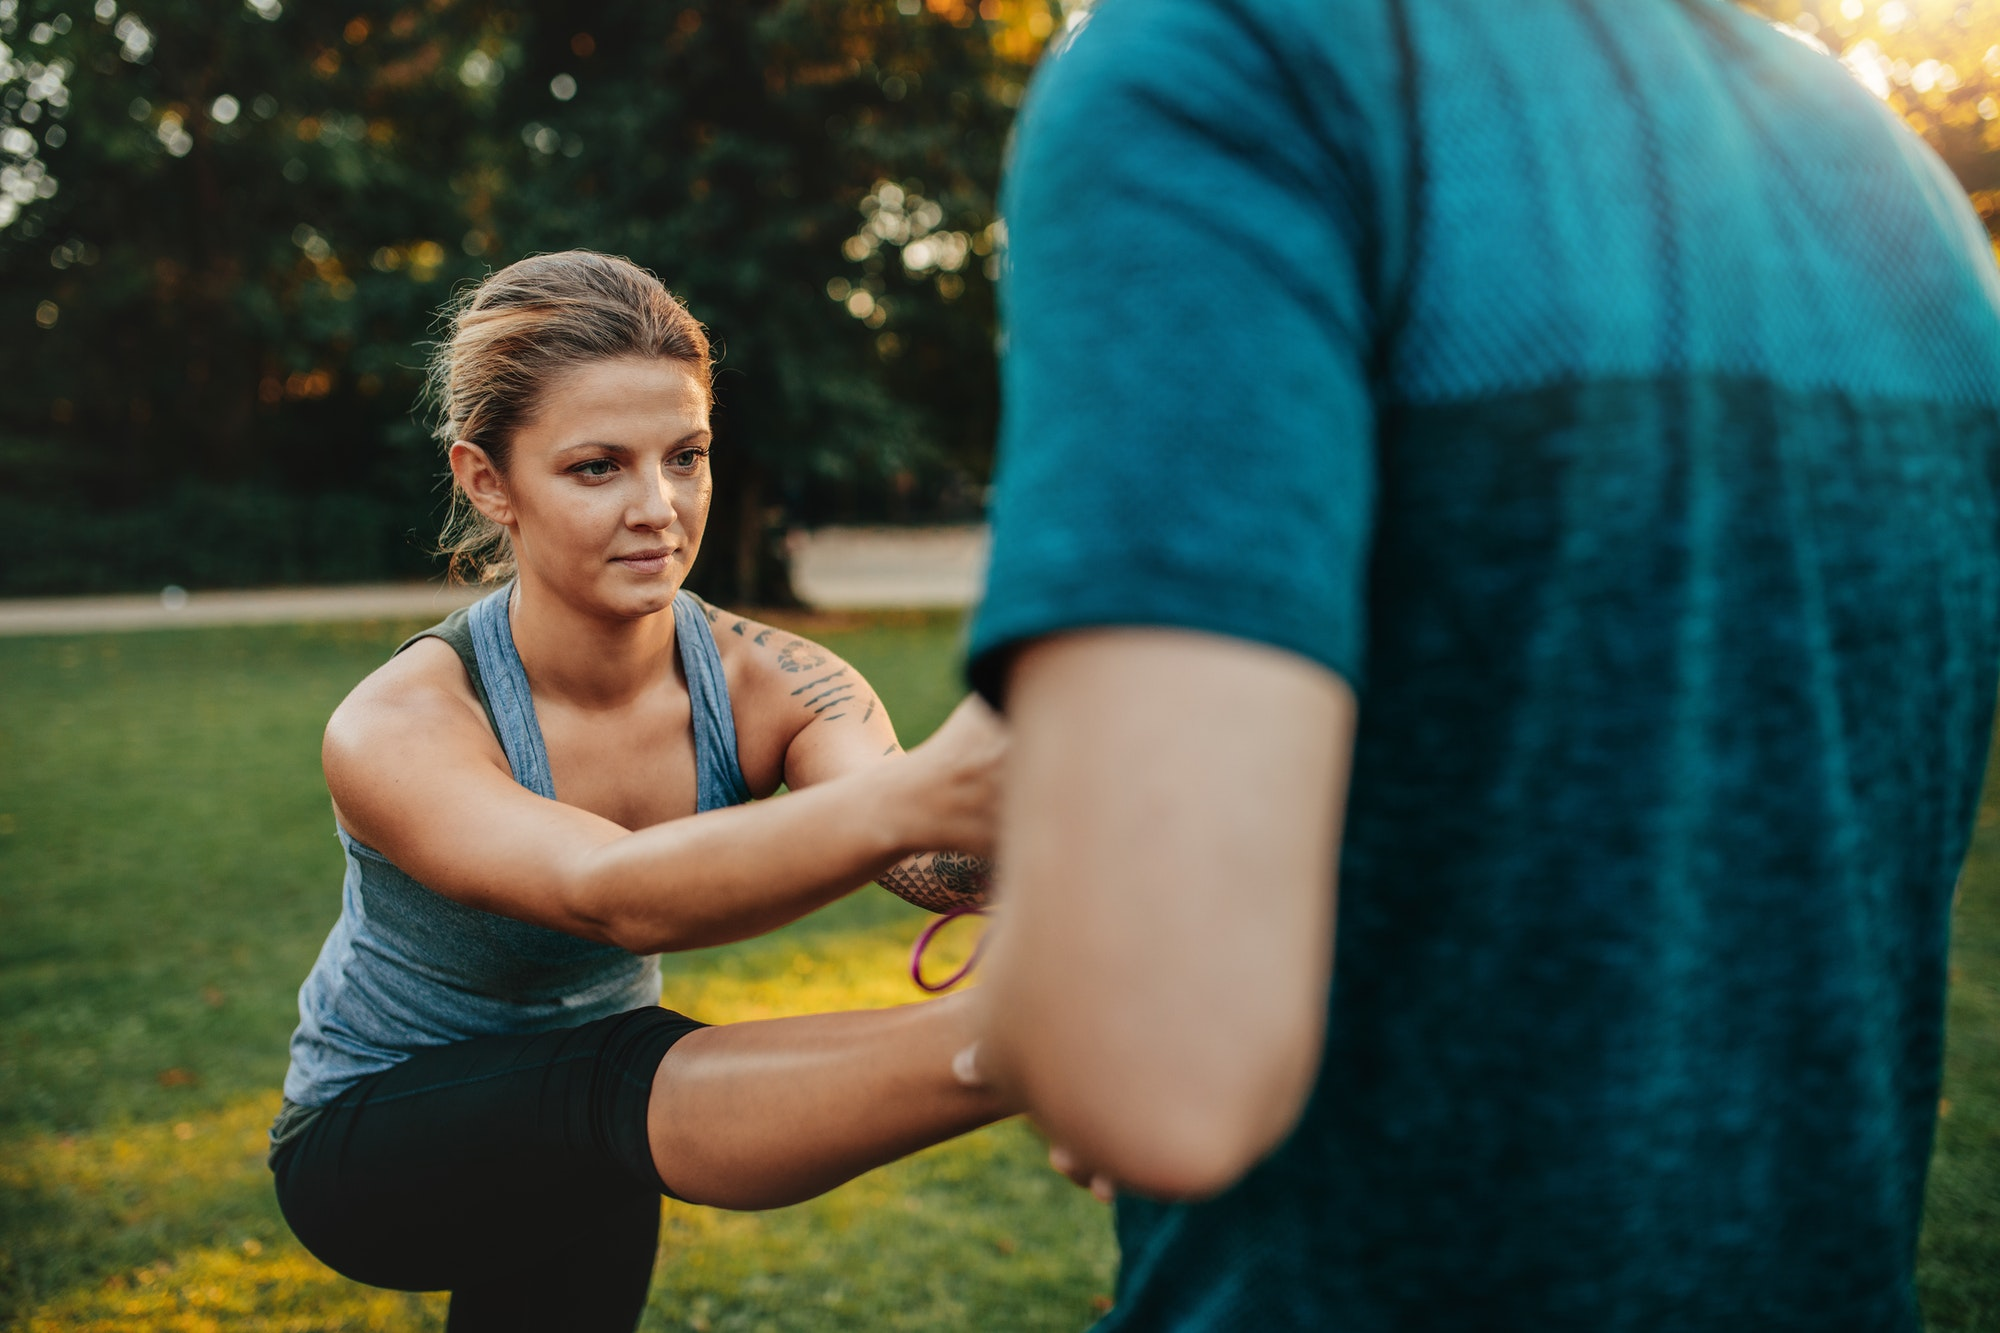 Fitness woman exercising with help of coach